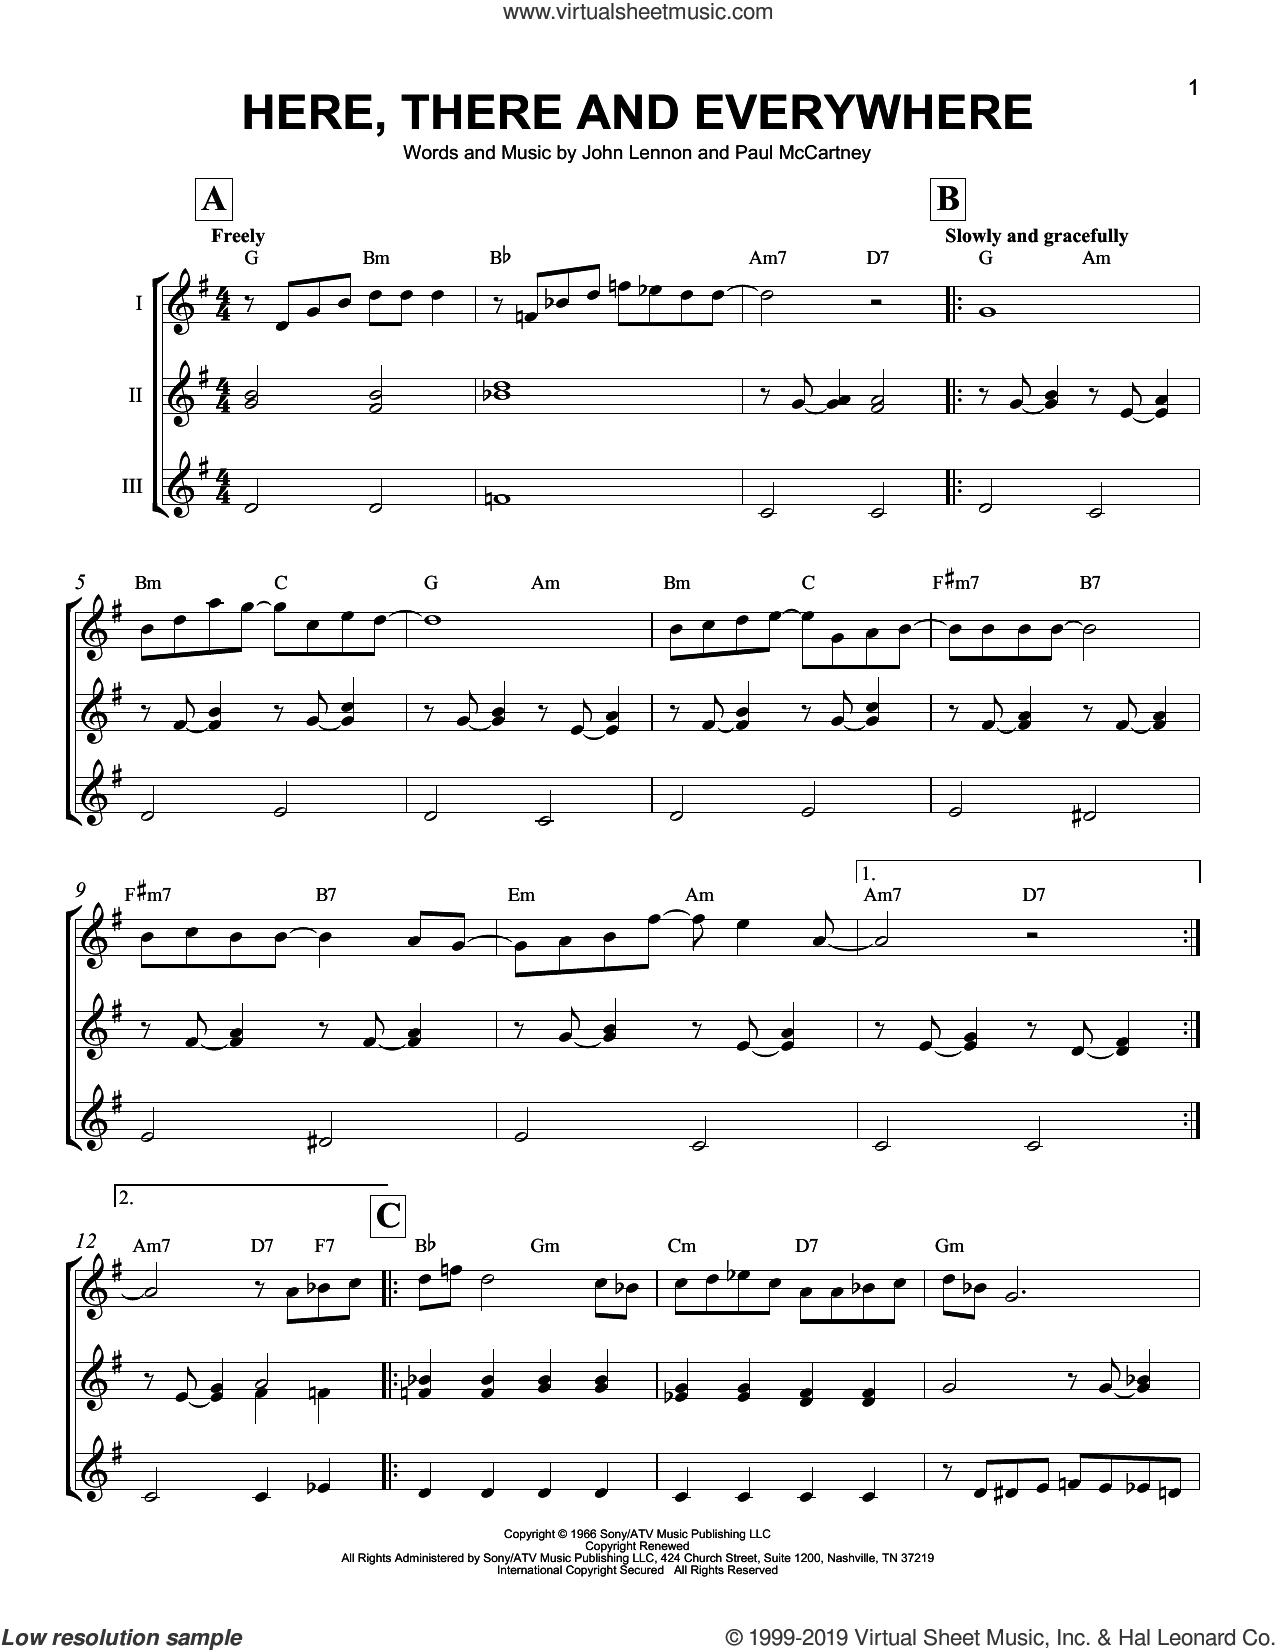 Here, There And Everywhere sheet music for ukulele ensemble by The Beatles, John Lennon and Paul McCartney, intermediate skill level